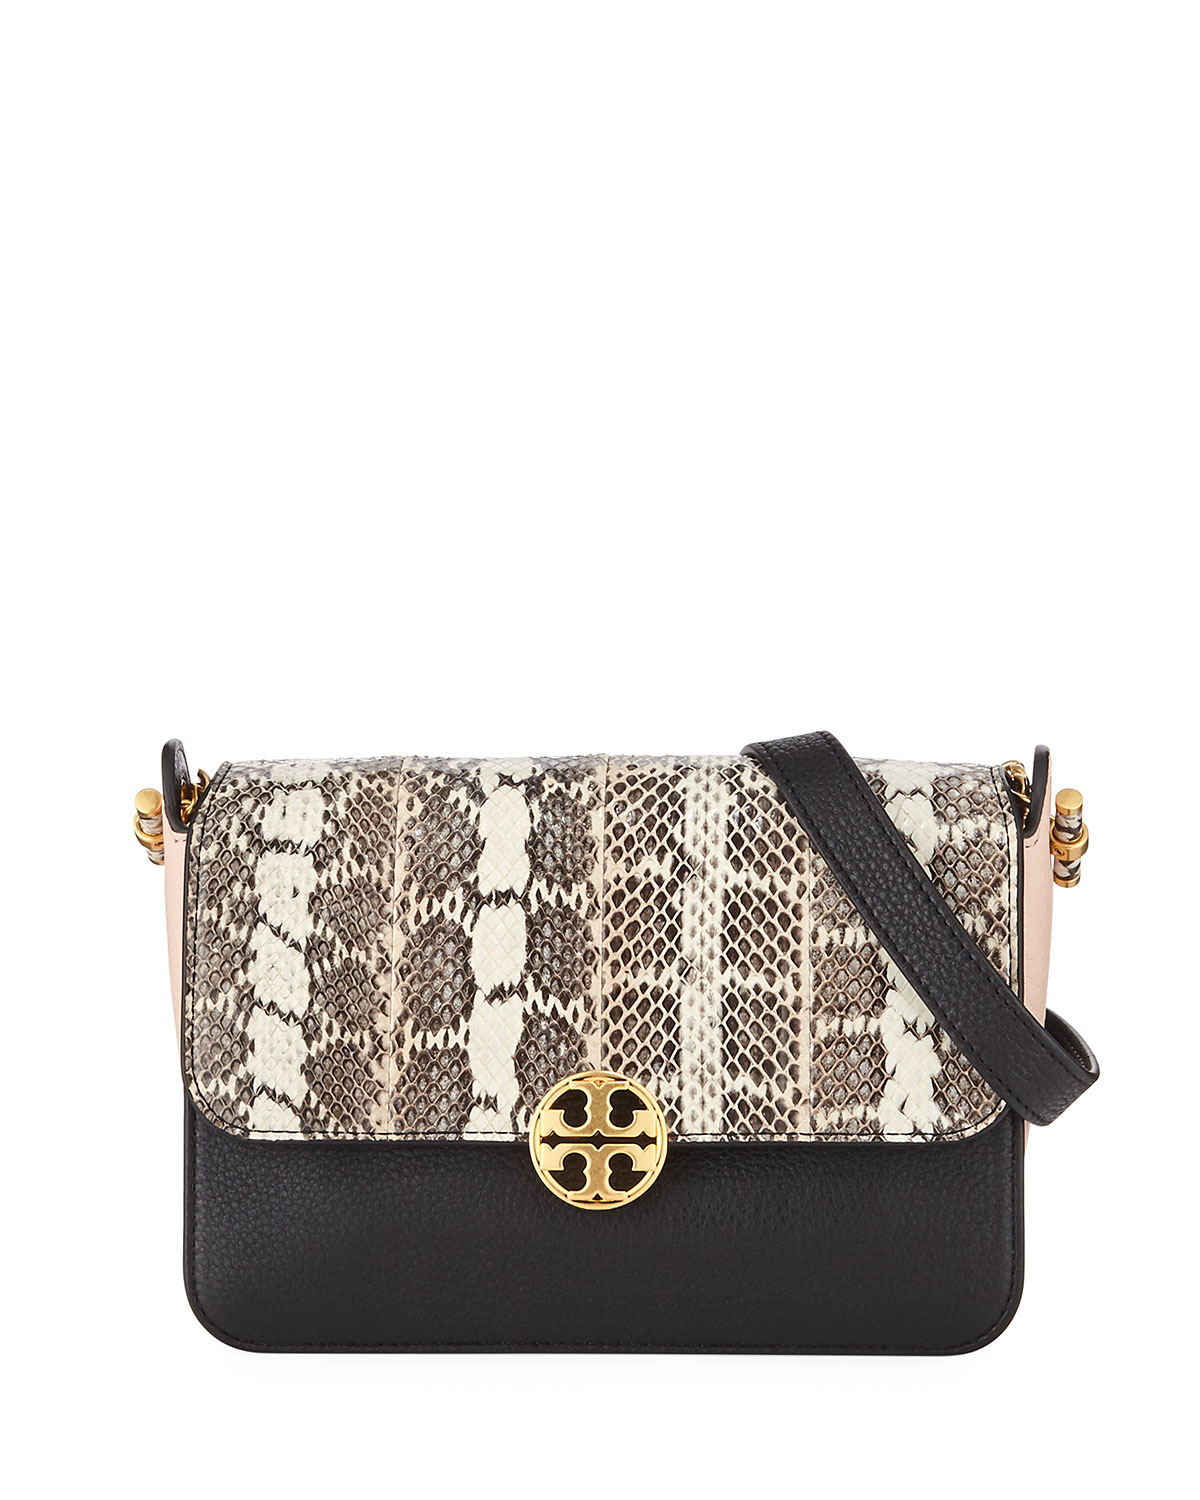 6a71beee010 Tory Burch Chelsea Colorblock Snake Crossbody Bag